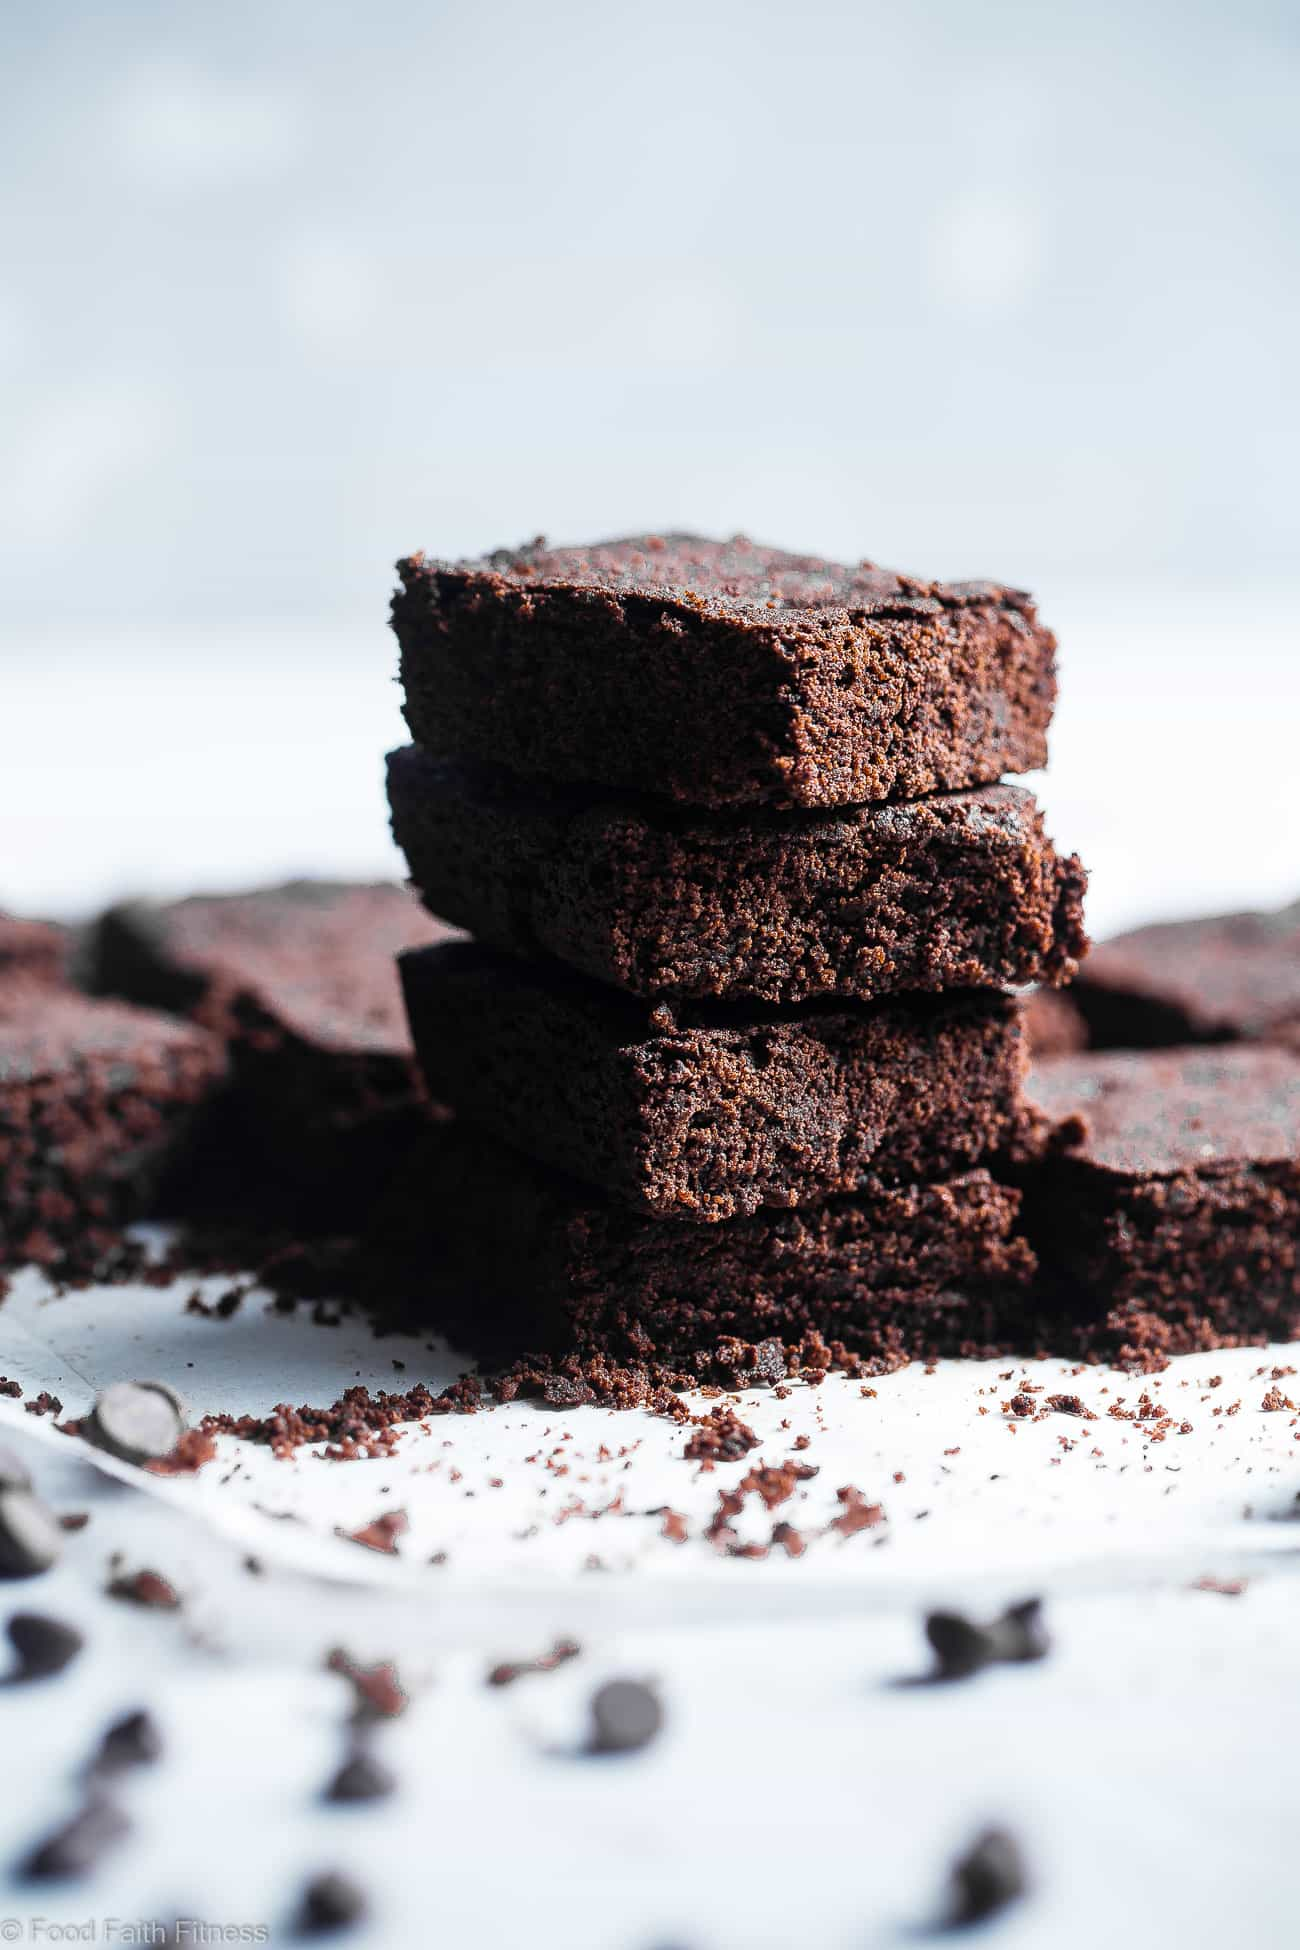 Keto Protein Low Carb Brownie Recipe -These gluten free brownies SO dense and chewy you would never believe they are only 107 calories and sugar/grain/dairy/gluten free and paleo friendly! The perfect healthy treat! | Foodfaithfitness.com | @FoodFaithFit